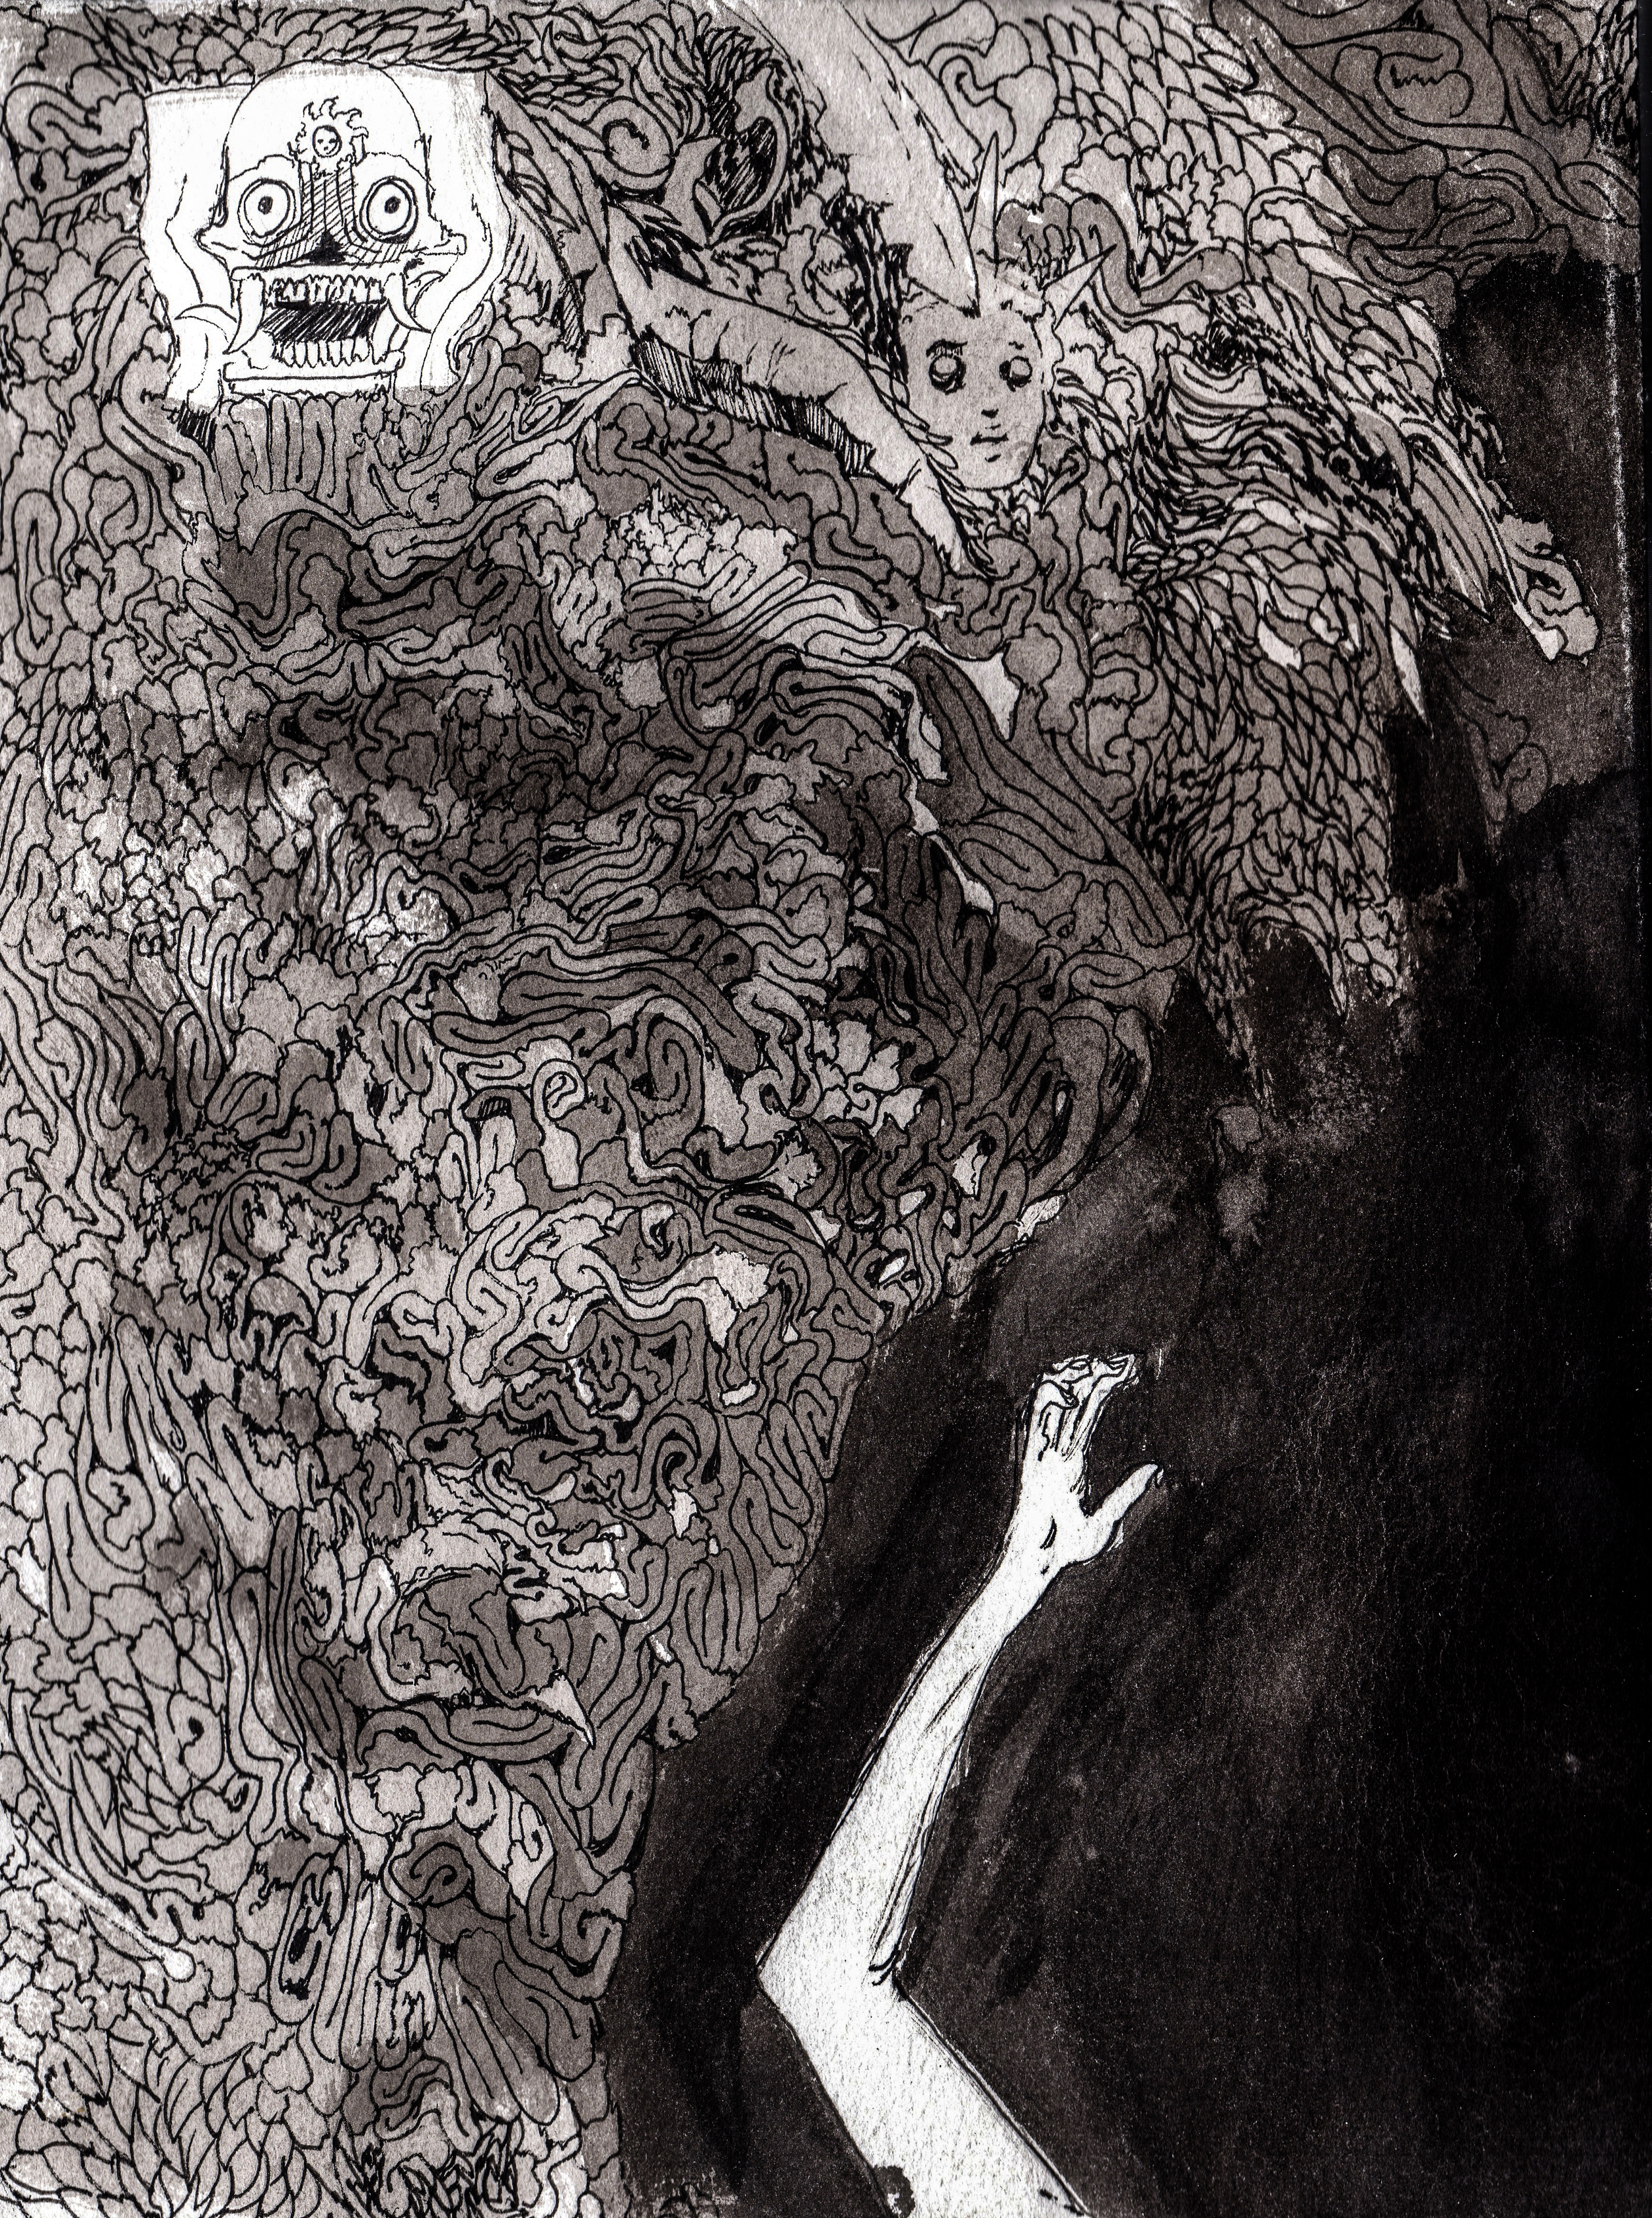 Glory to the unconquered sun.  2013. 12 x 15 inches. Ink wash on paper.